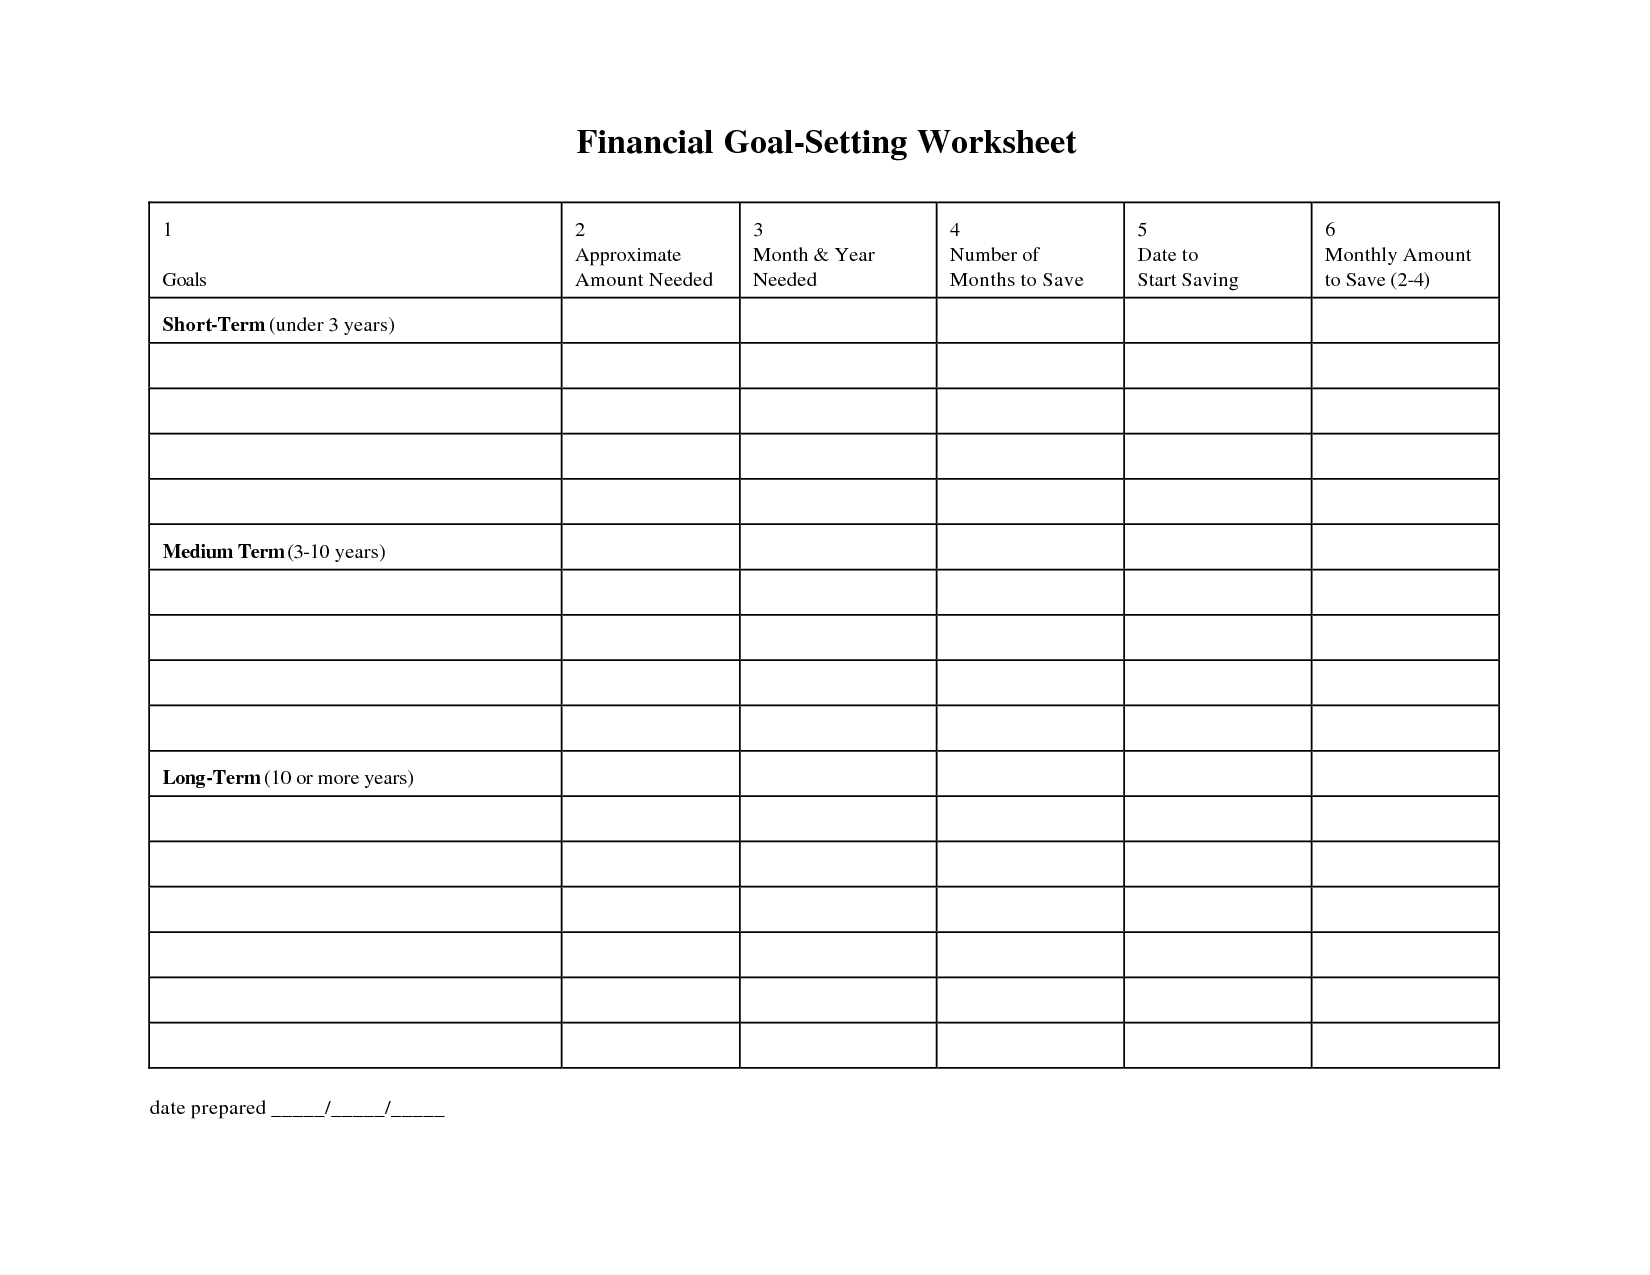 Worksheets Financial Goal Worksheet goal setting plan template get without losing sleep personal 2017 setting